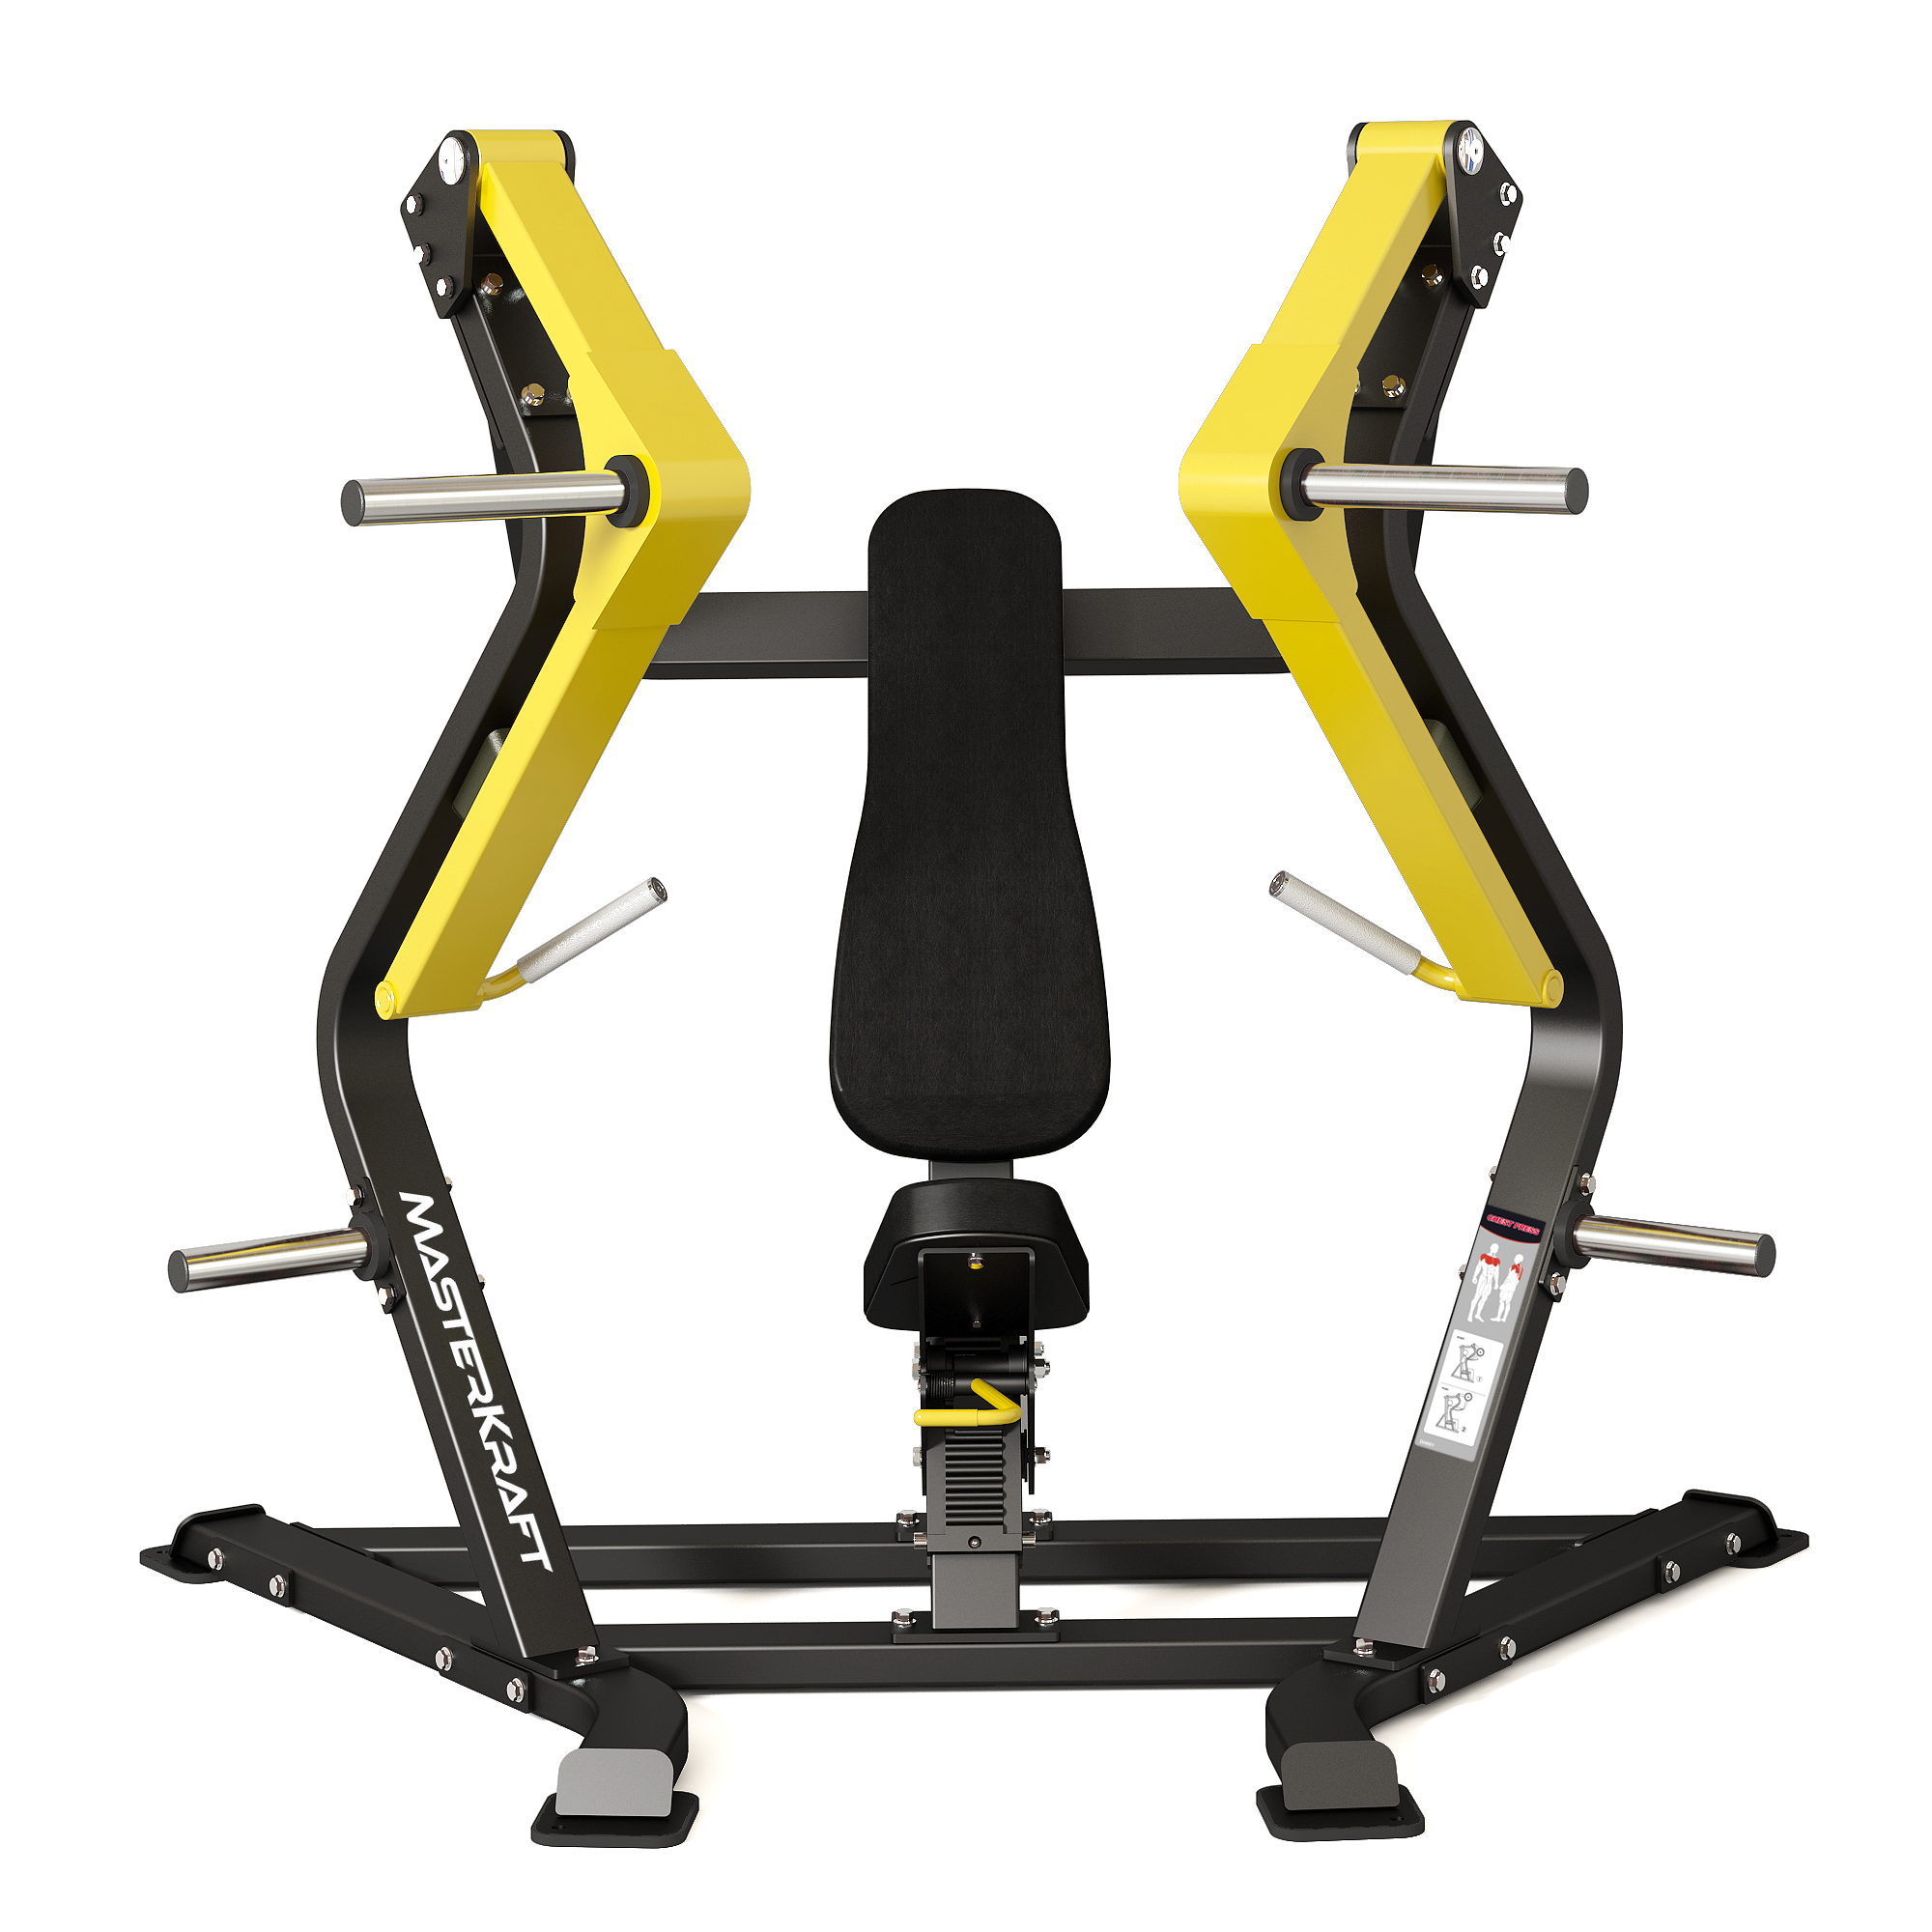 MasterKraft Premier Decline Chest Press Machine